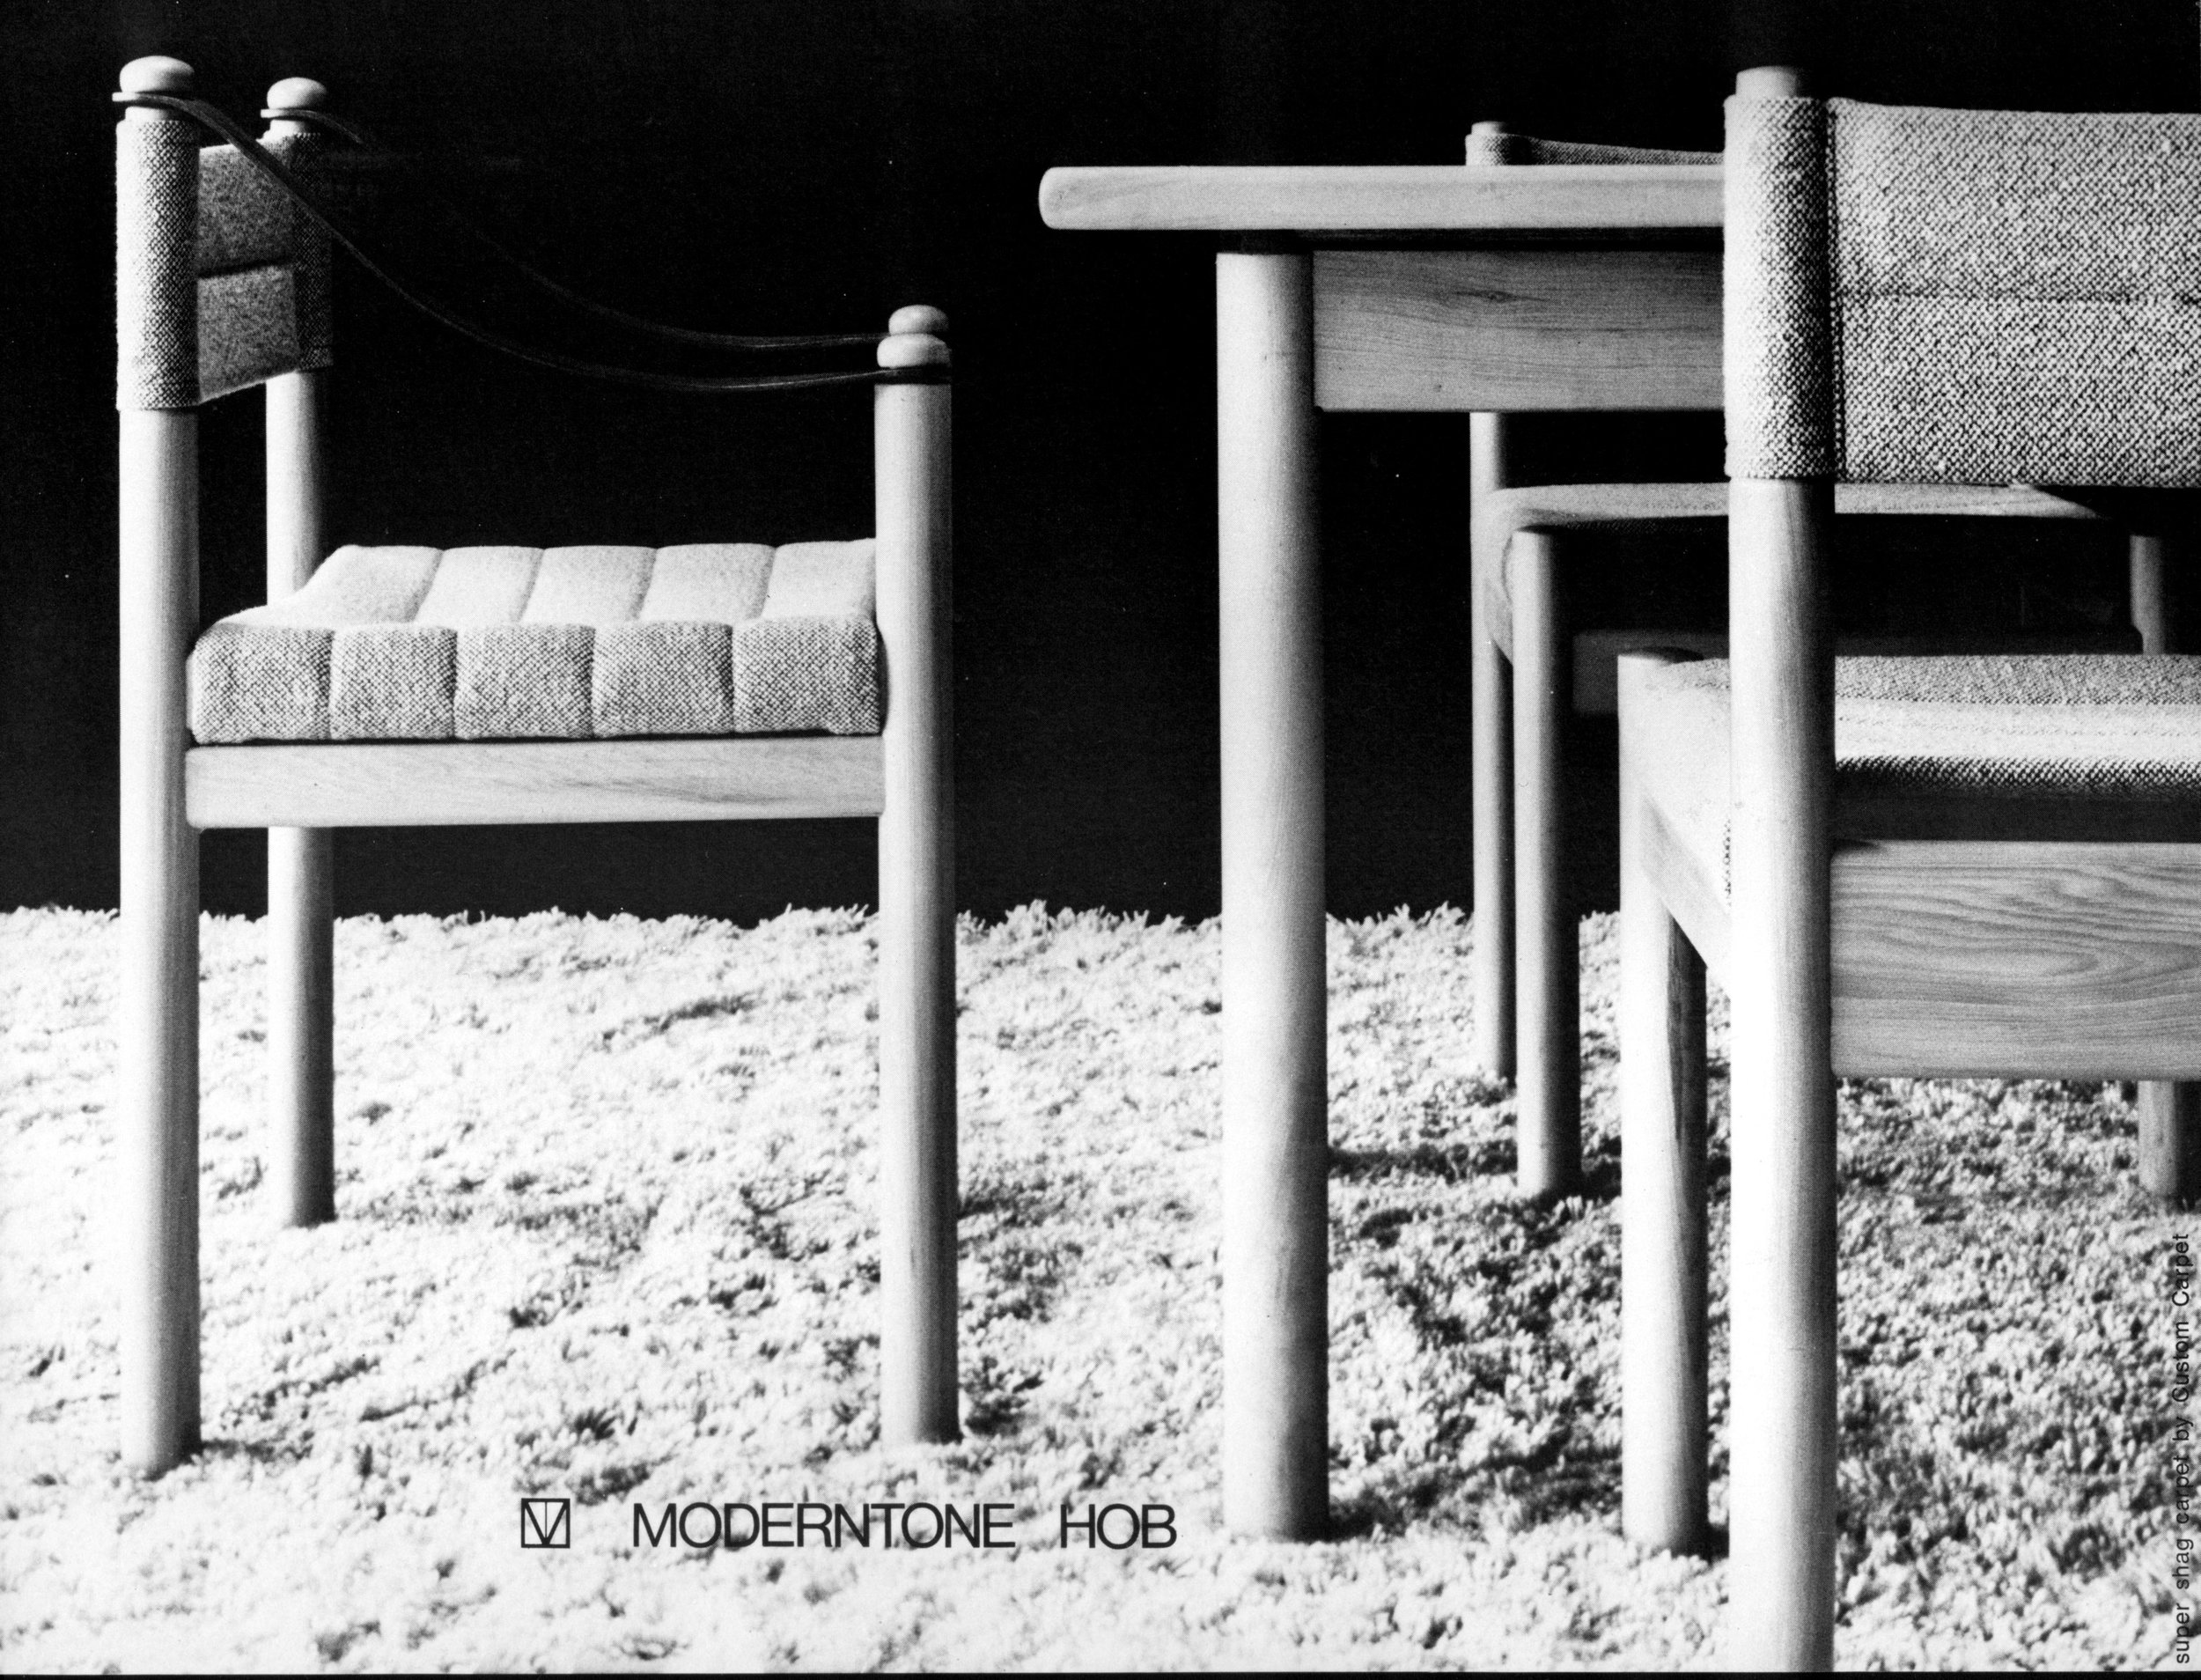 Hob dining chairs and table, 1972